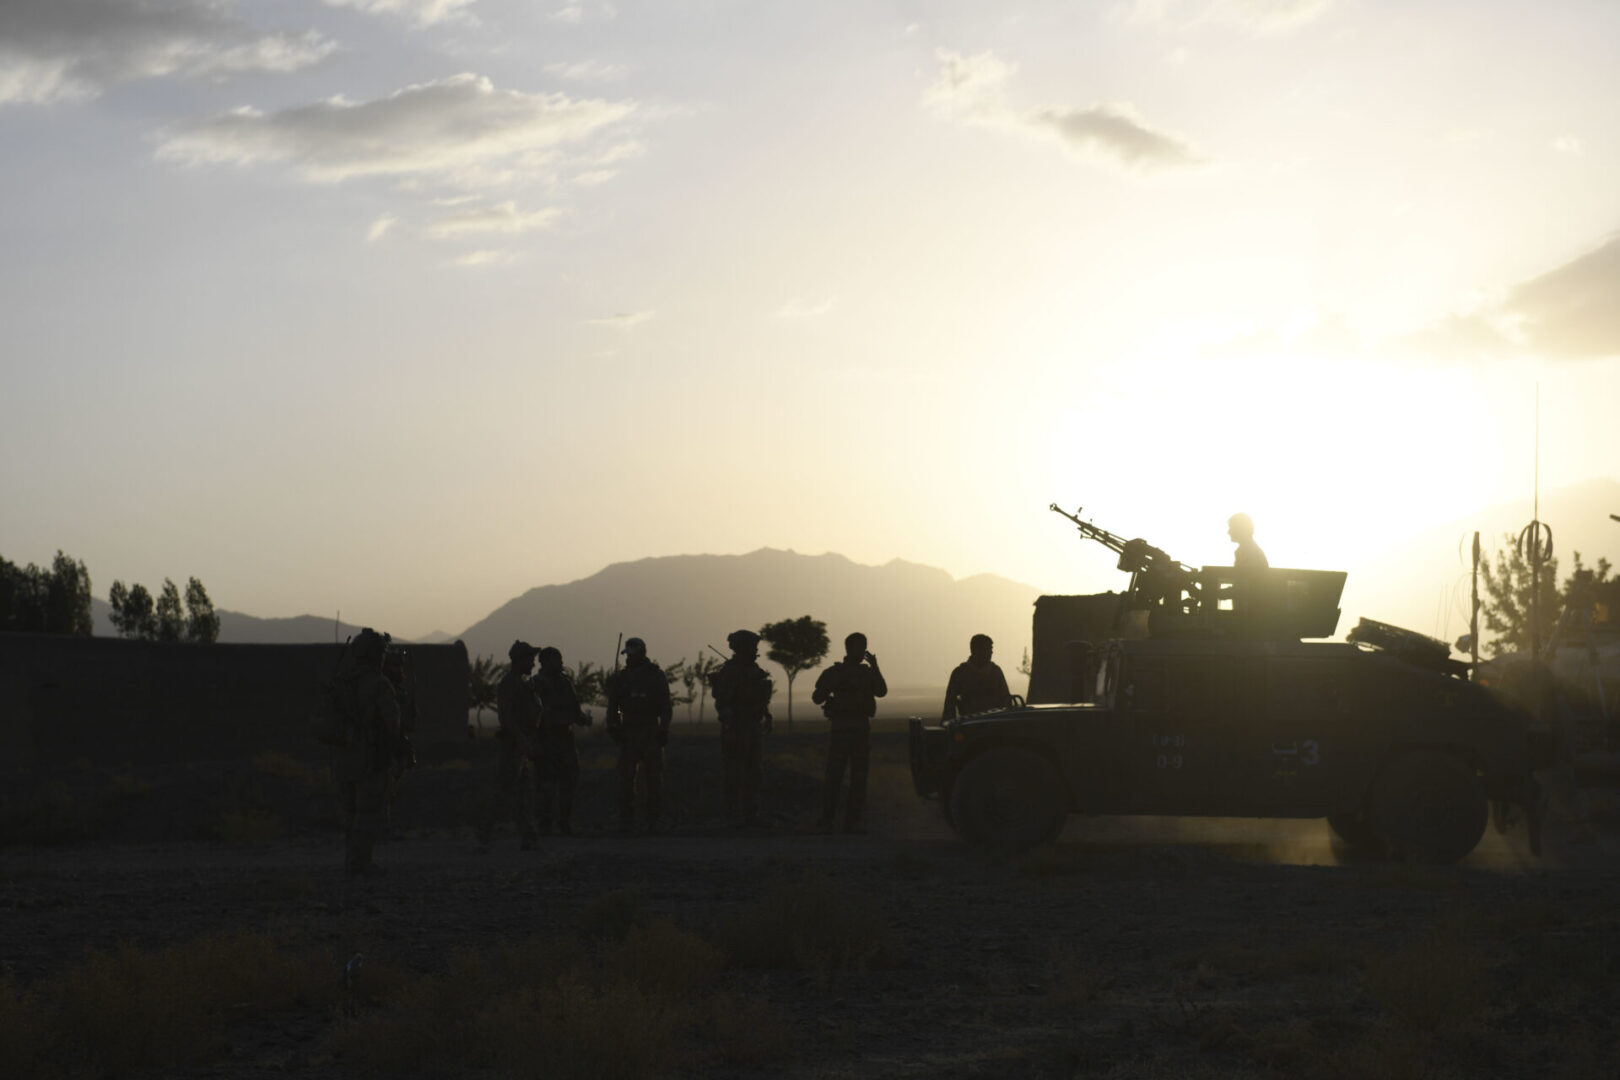 MOHAMMAD AGHA DISTRICT, Afghanistan (July 28, 2018) -- Afghan Special Security Forces and U.S. Special Operations soldiers enjoy a sunset in Mohammad Agha district, Logar province, Afghanistan, July 28, 2018. (U.S. Air Force photo by Staff Sgt. Nicholas Byers)